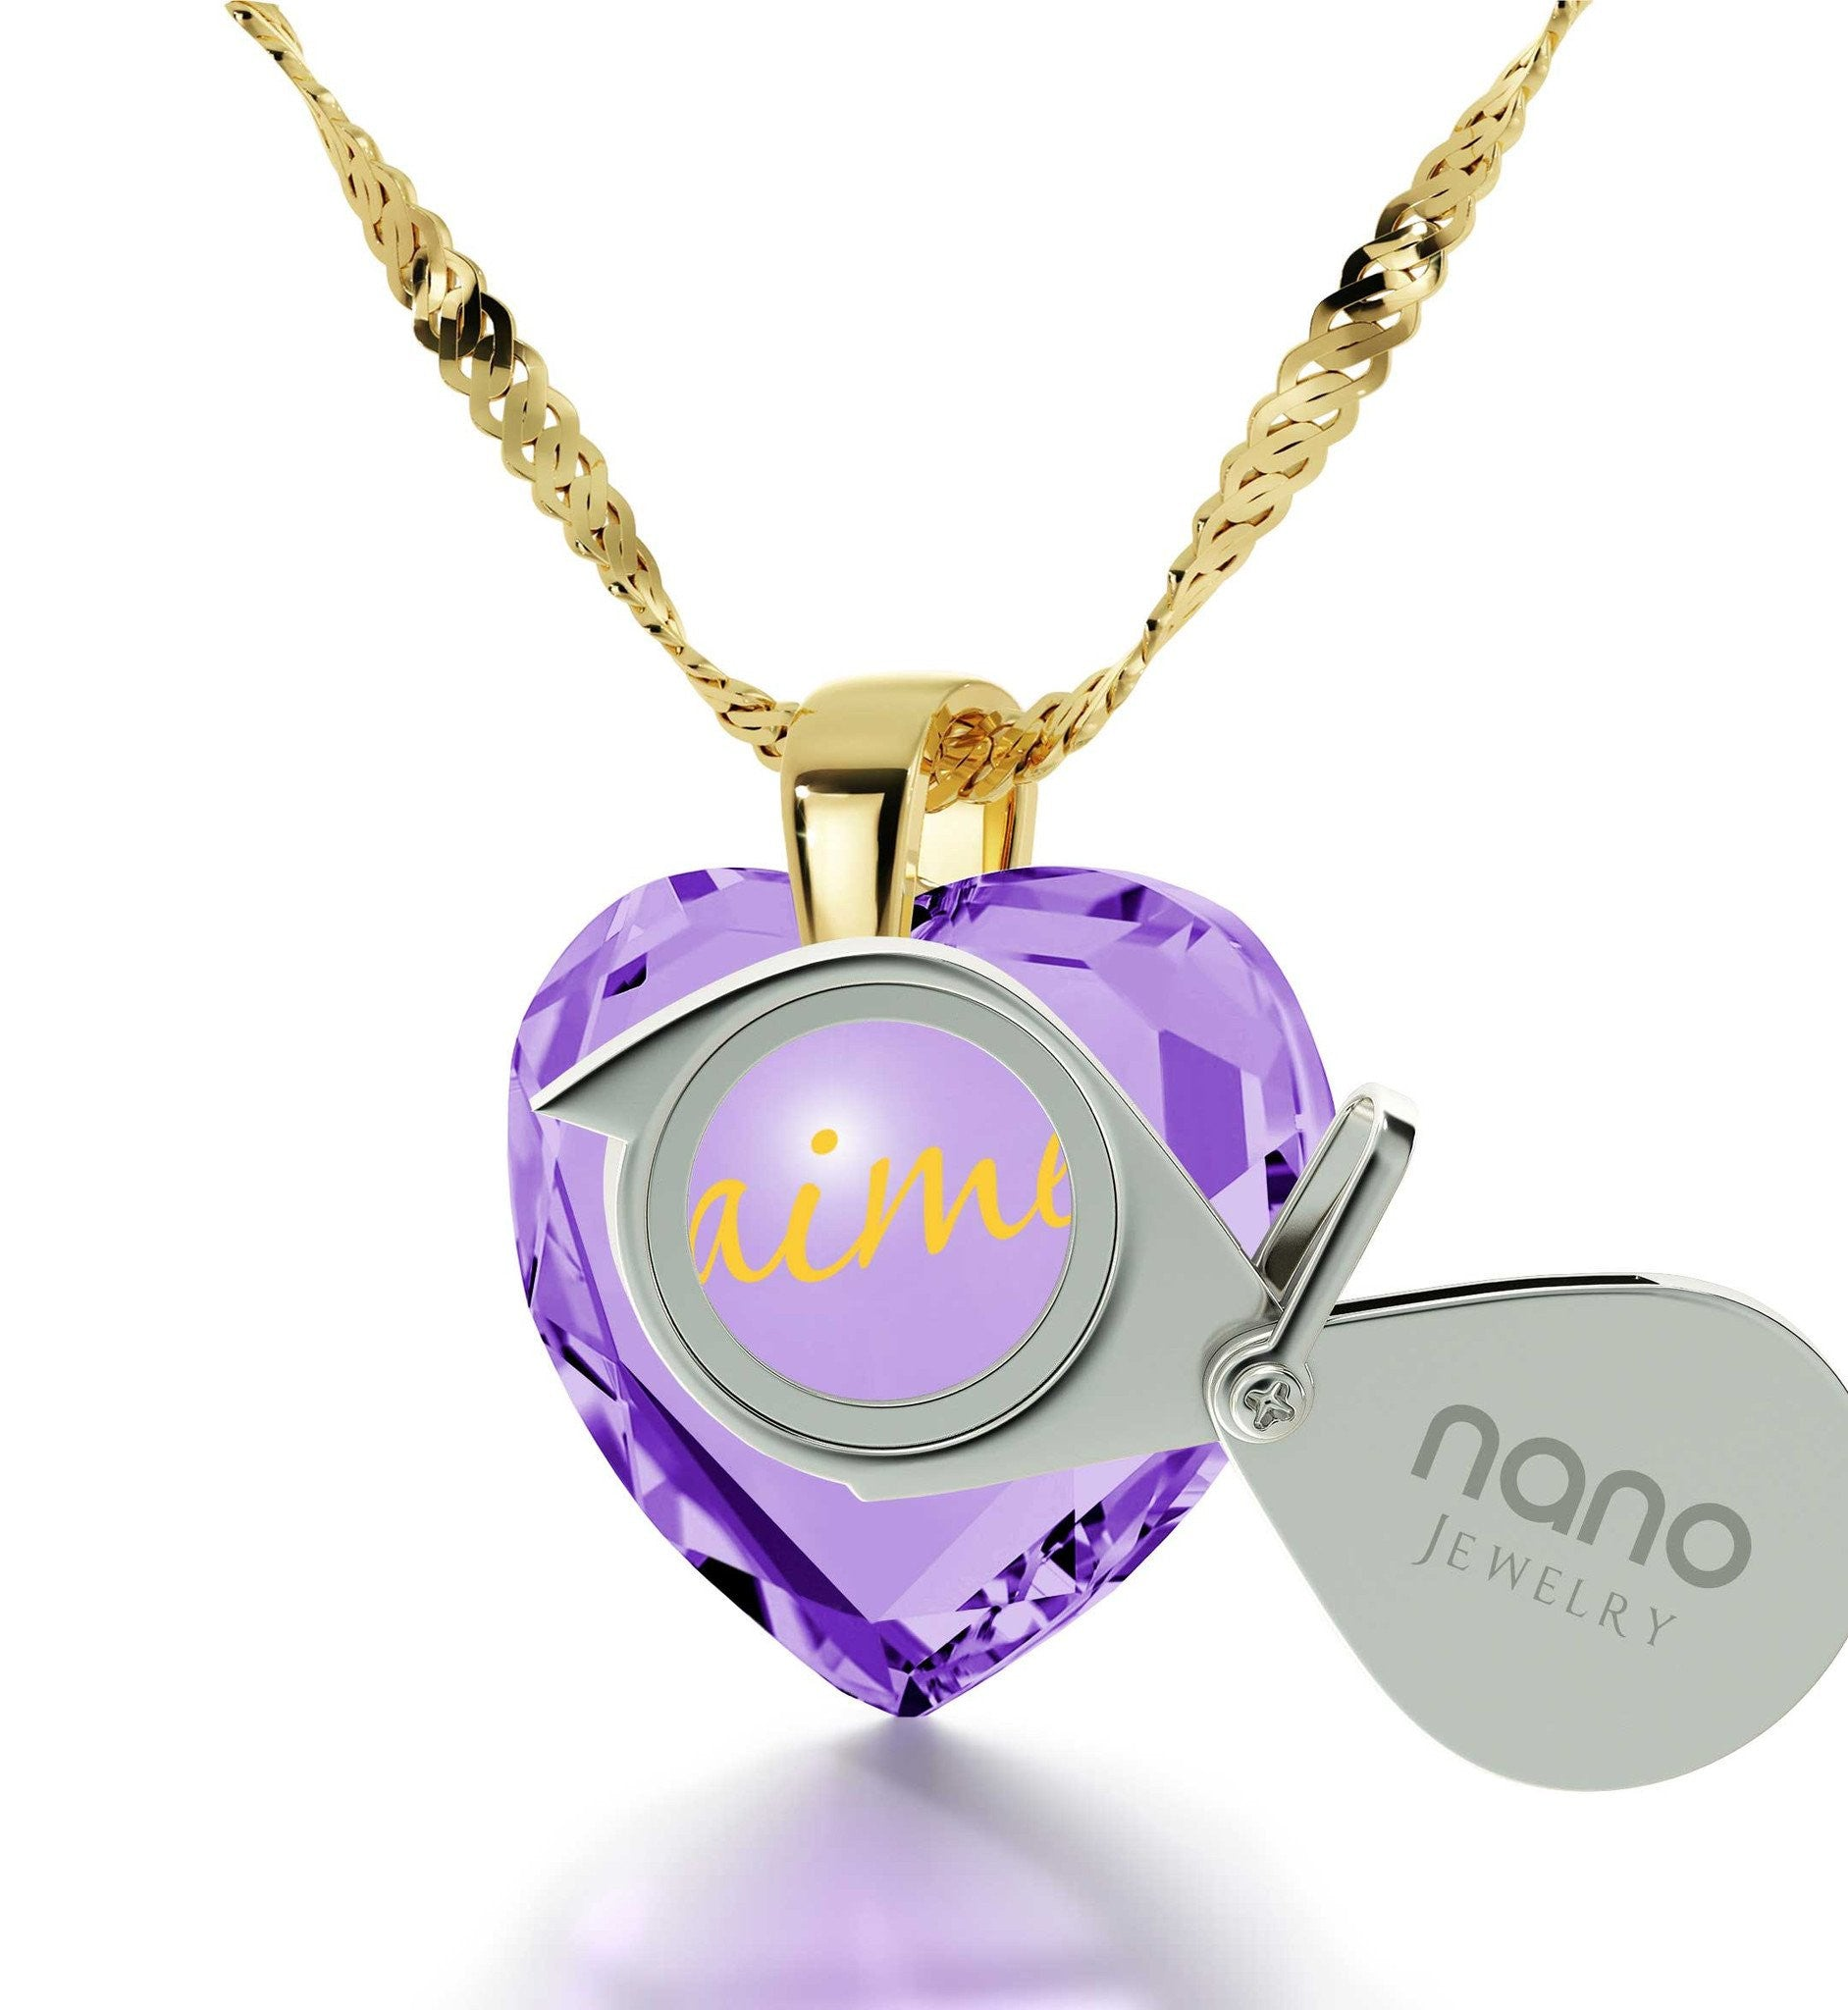 "Birthday Surprises for Her,""I Love You"" in French, CZ Jewelry, Cute Necklaces for Girlfriend, Nano"